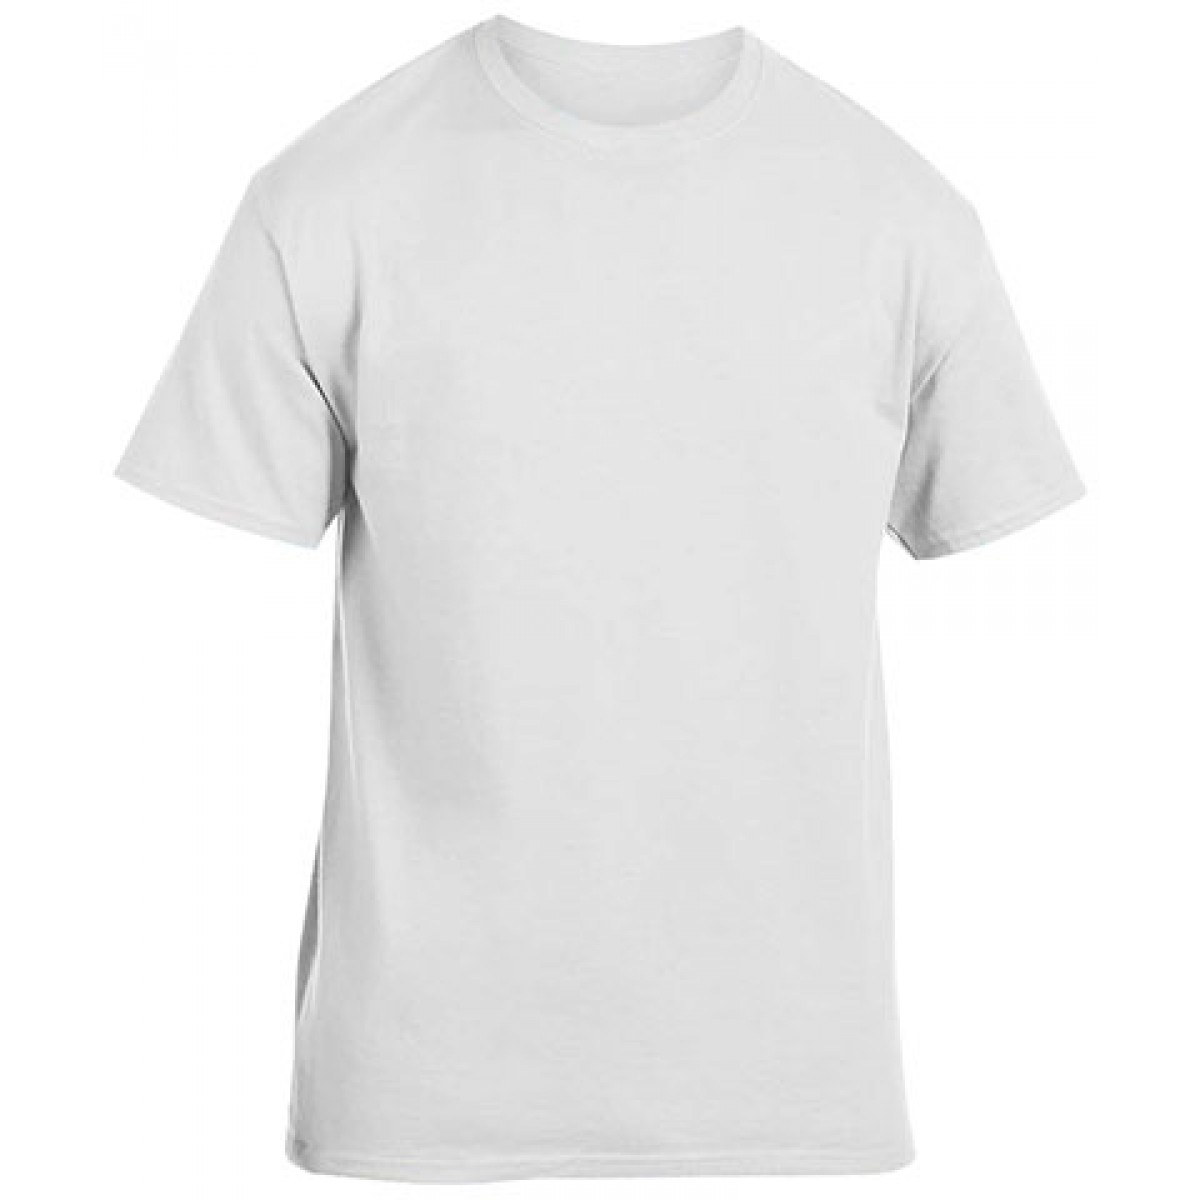 Cotton Short Sleeve T-Shirt-White-S